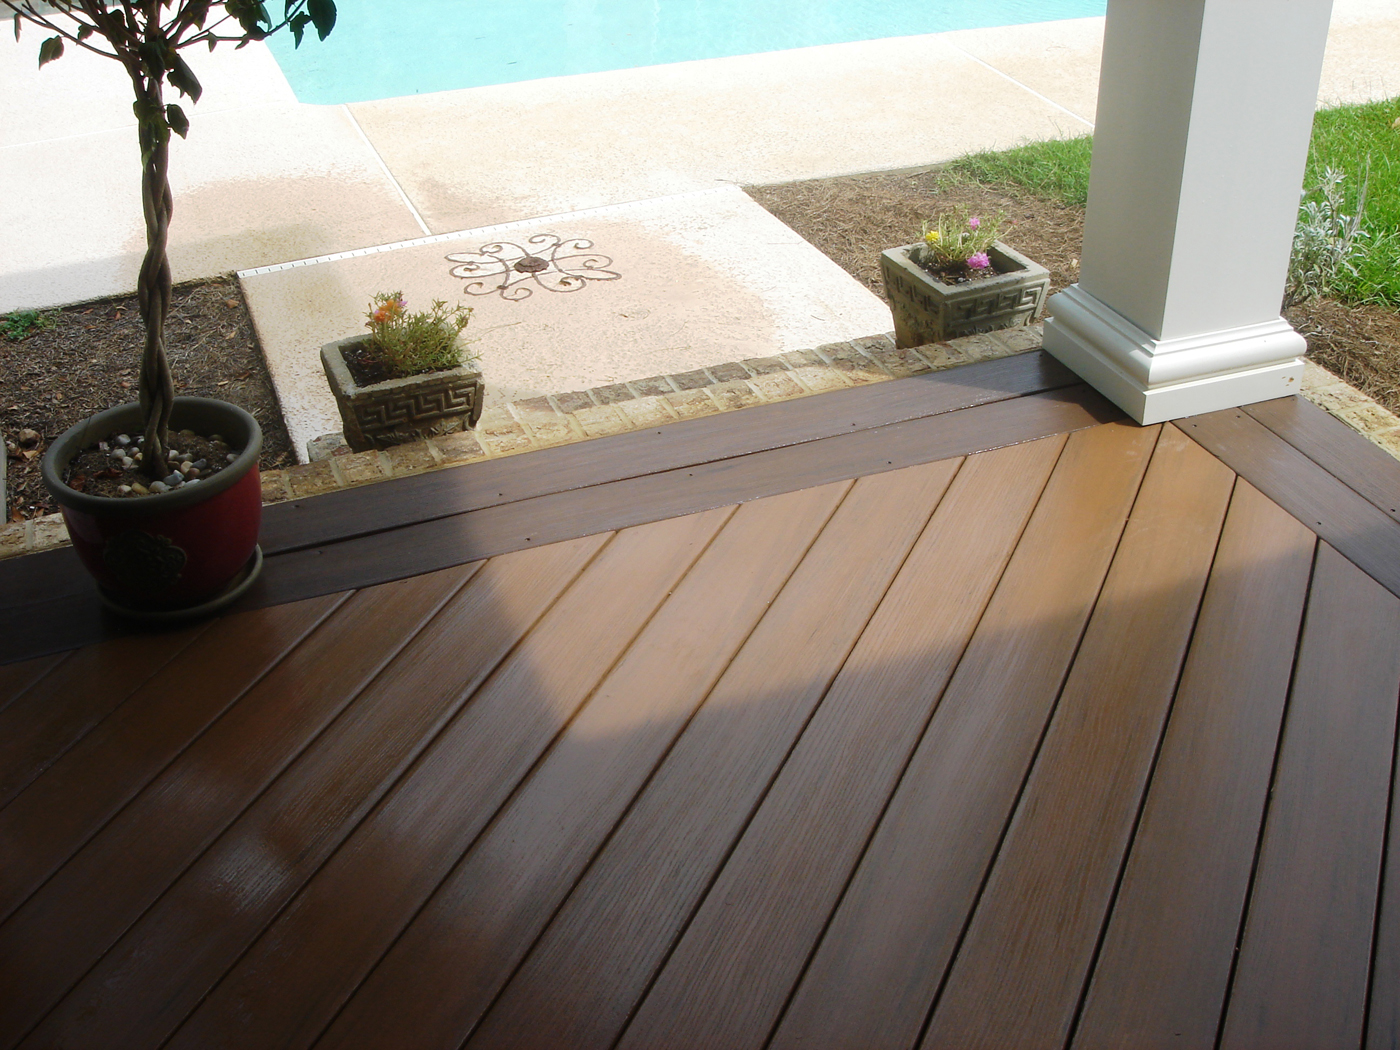 Best way to remove paint from a wood deck - Best Way To Remove Paint From A Wood Deck